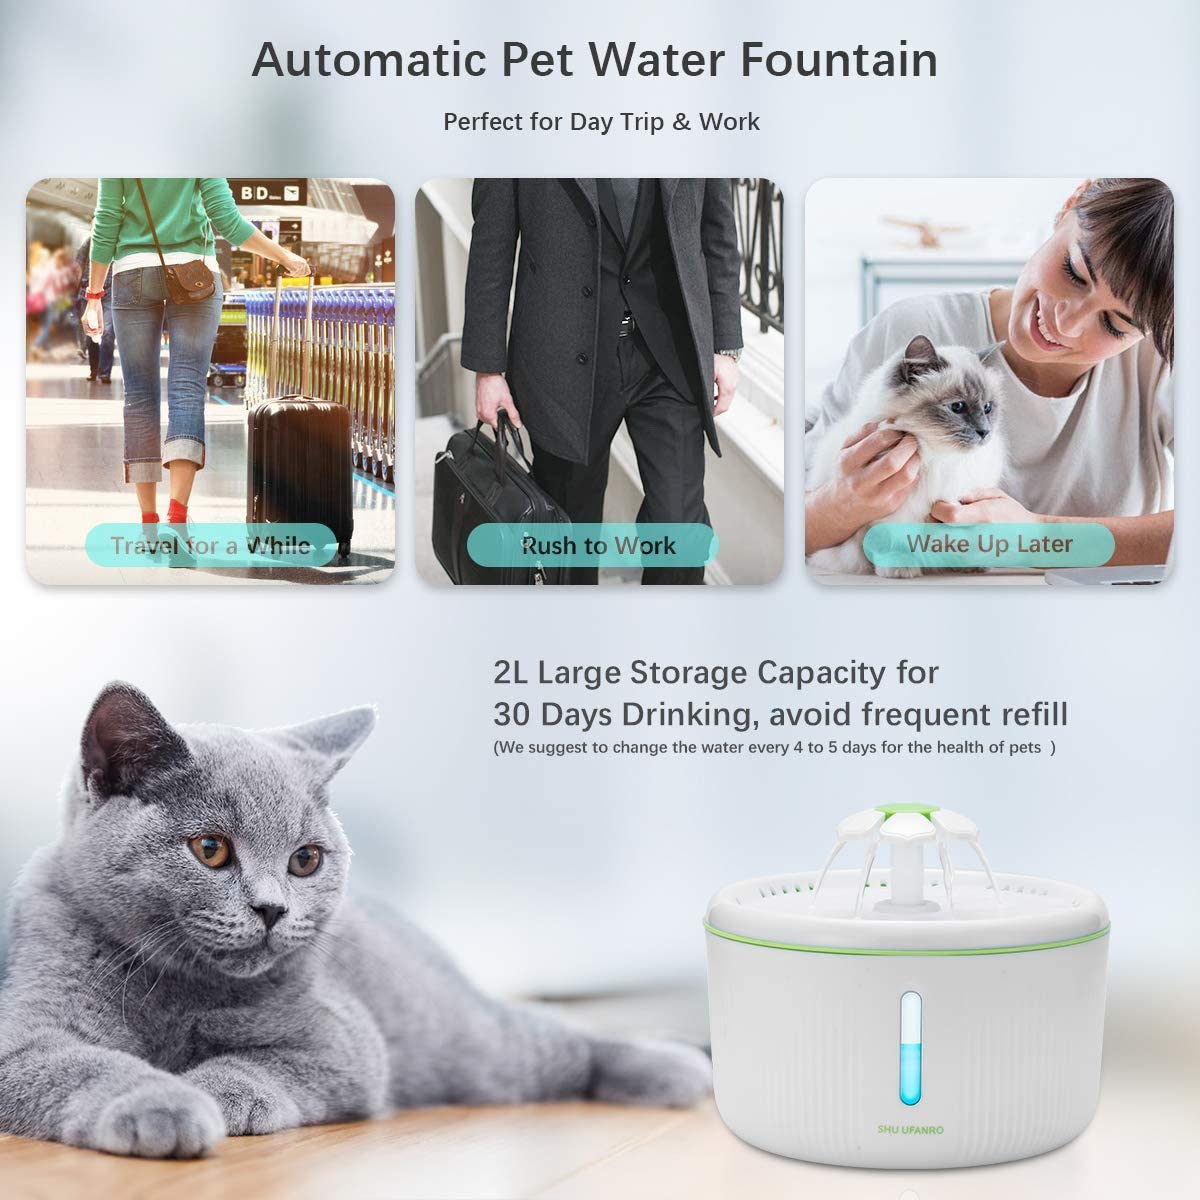 Multiple Pets 70oz//2L Drinking Fountains Bowl with LED Light for Cat and Small Dogs SHU UFANRO Pet Fountain Automatic Cat Water Fountain Dog Water Dispenser with 3 Replacement Filters